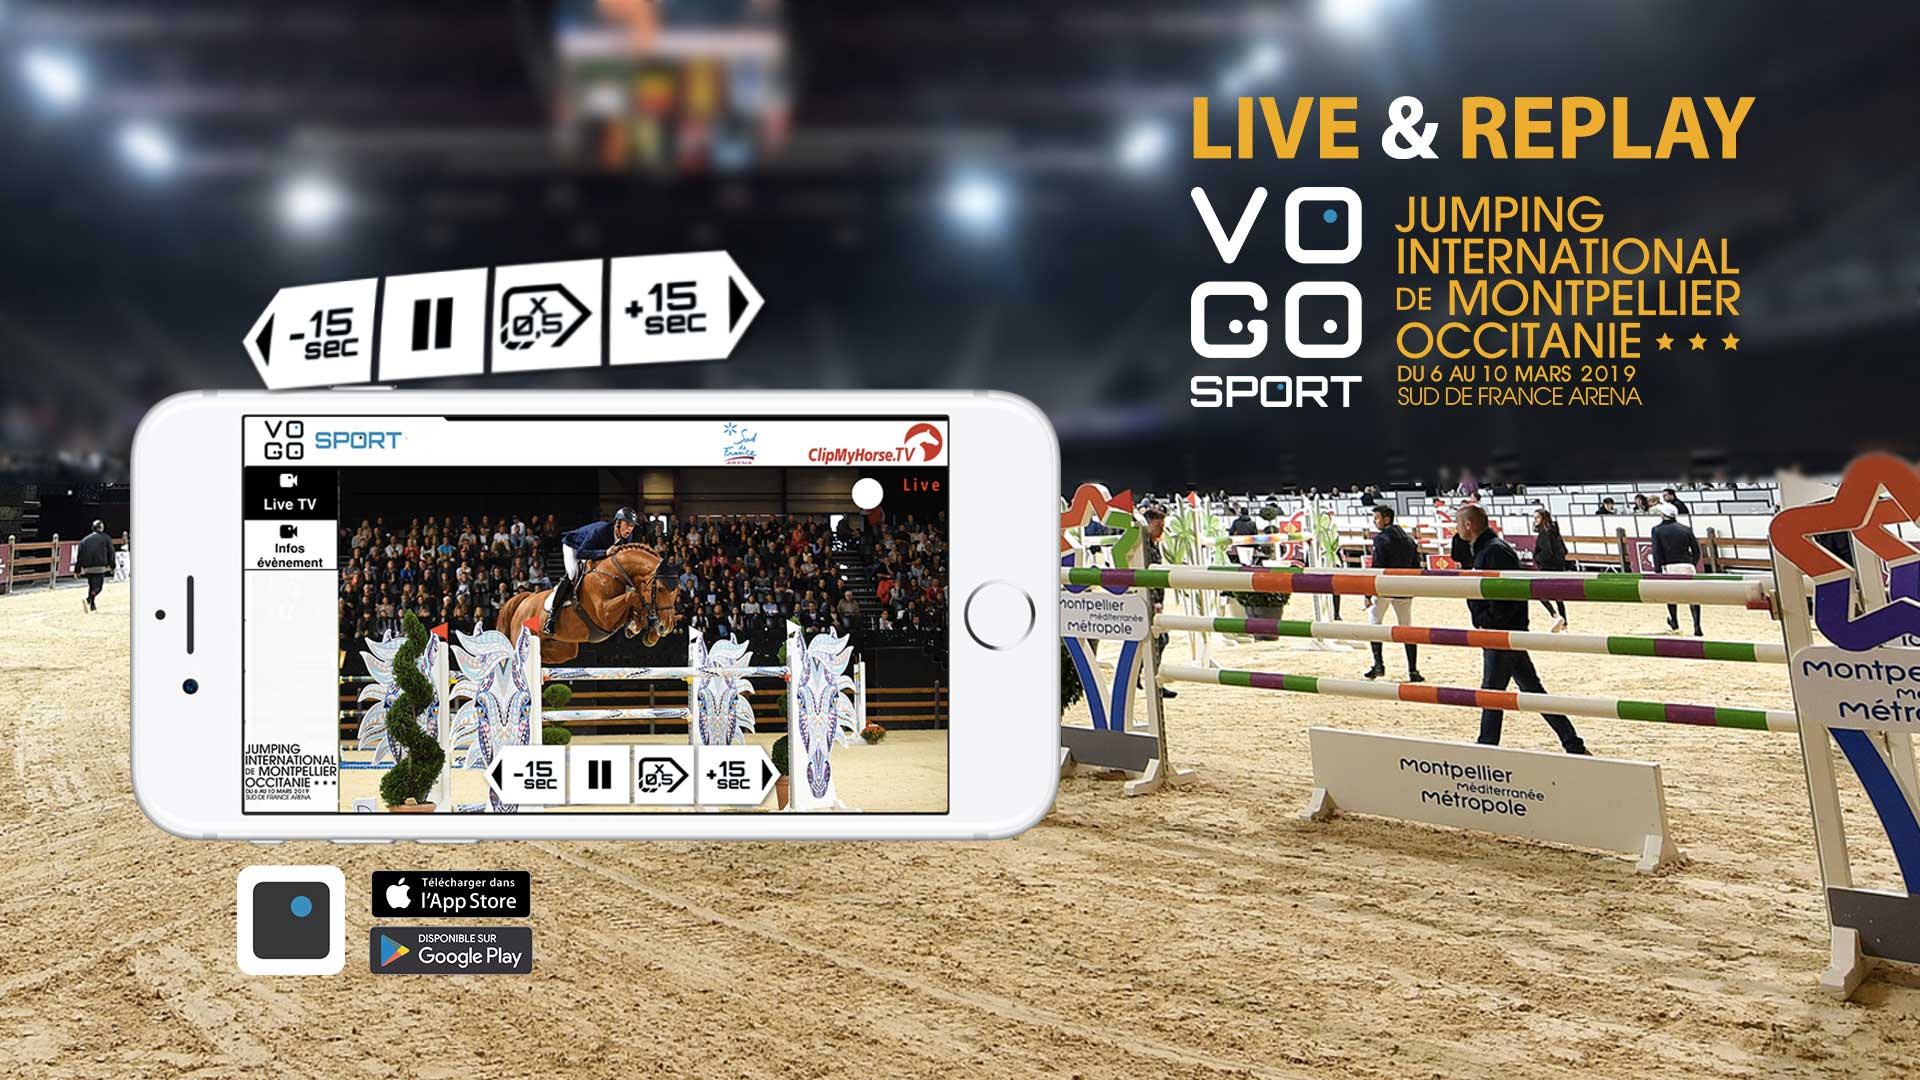 VOGO SPORT au Jumping International de Montpellier Occitanie